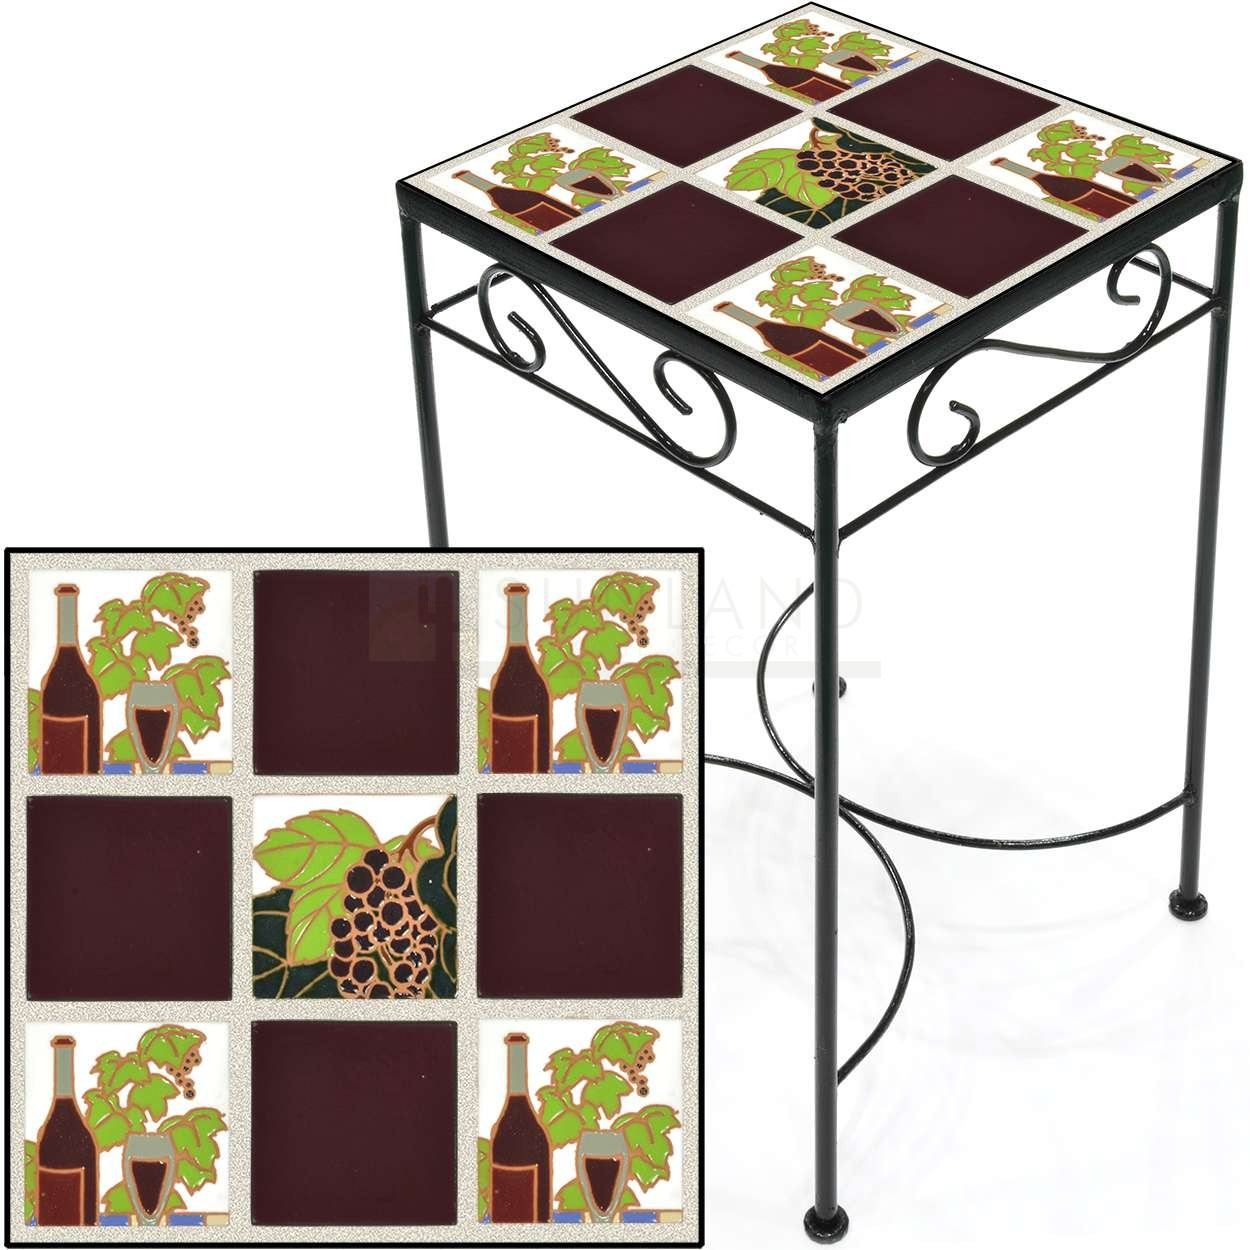 tile accent table wine and grapes burgundy tall outdoor more views battery operated lights concrete coffee antique roadshow tiffany lamps white grey marble round bar small drop